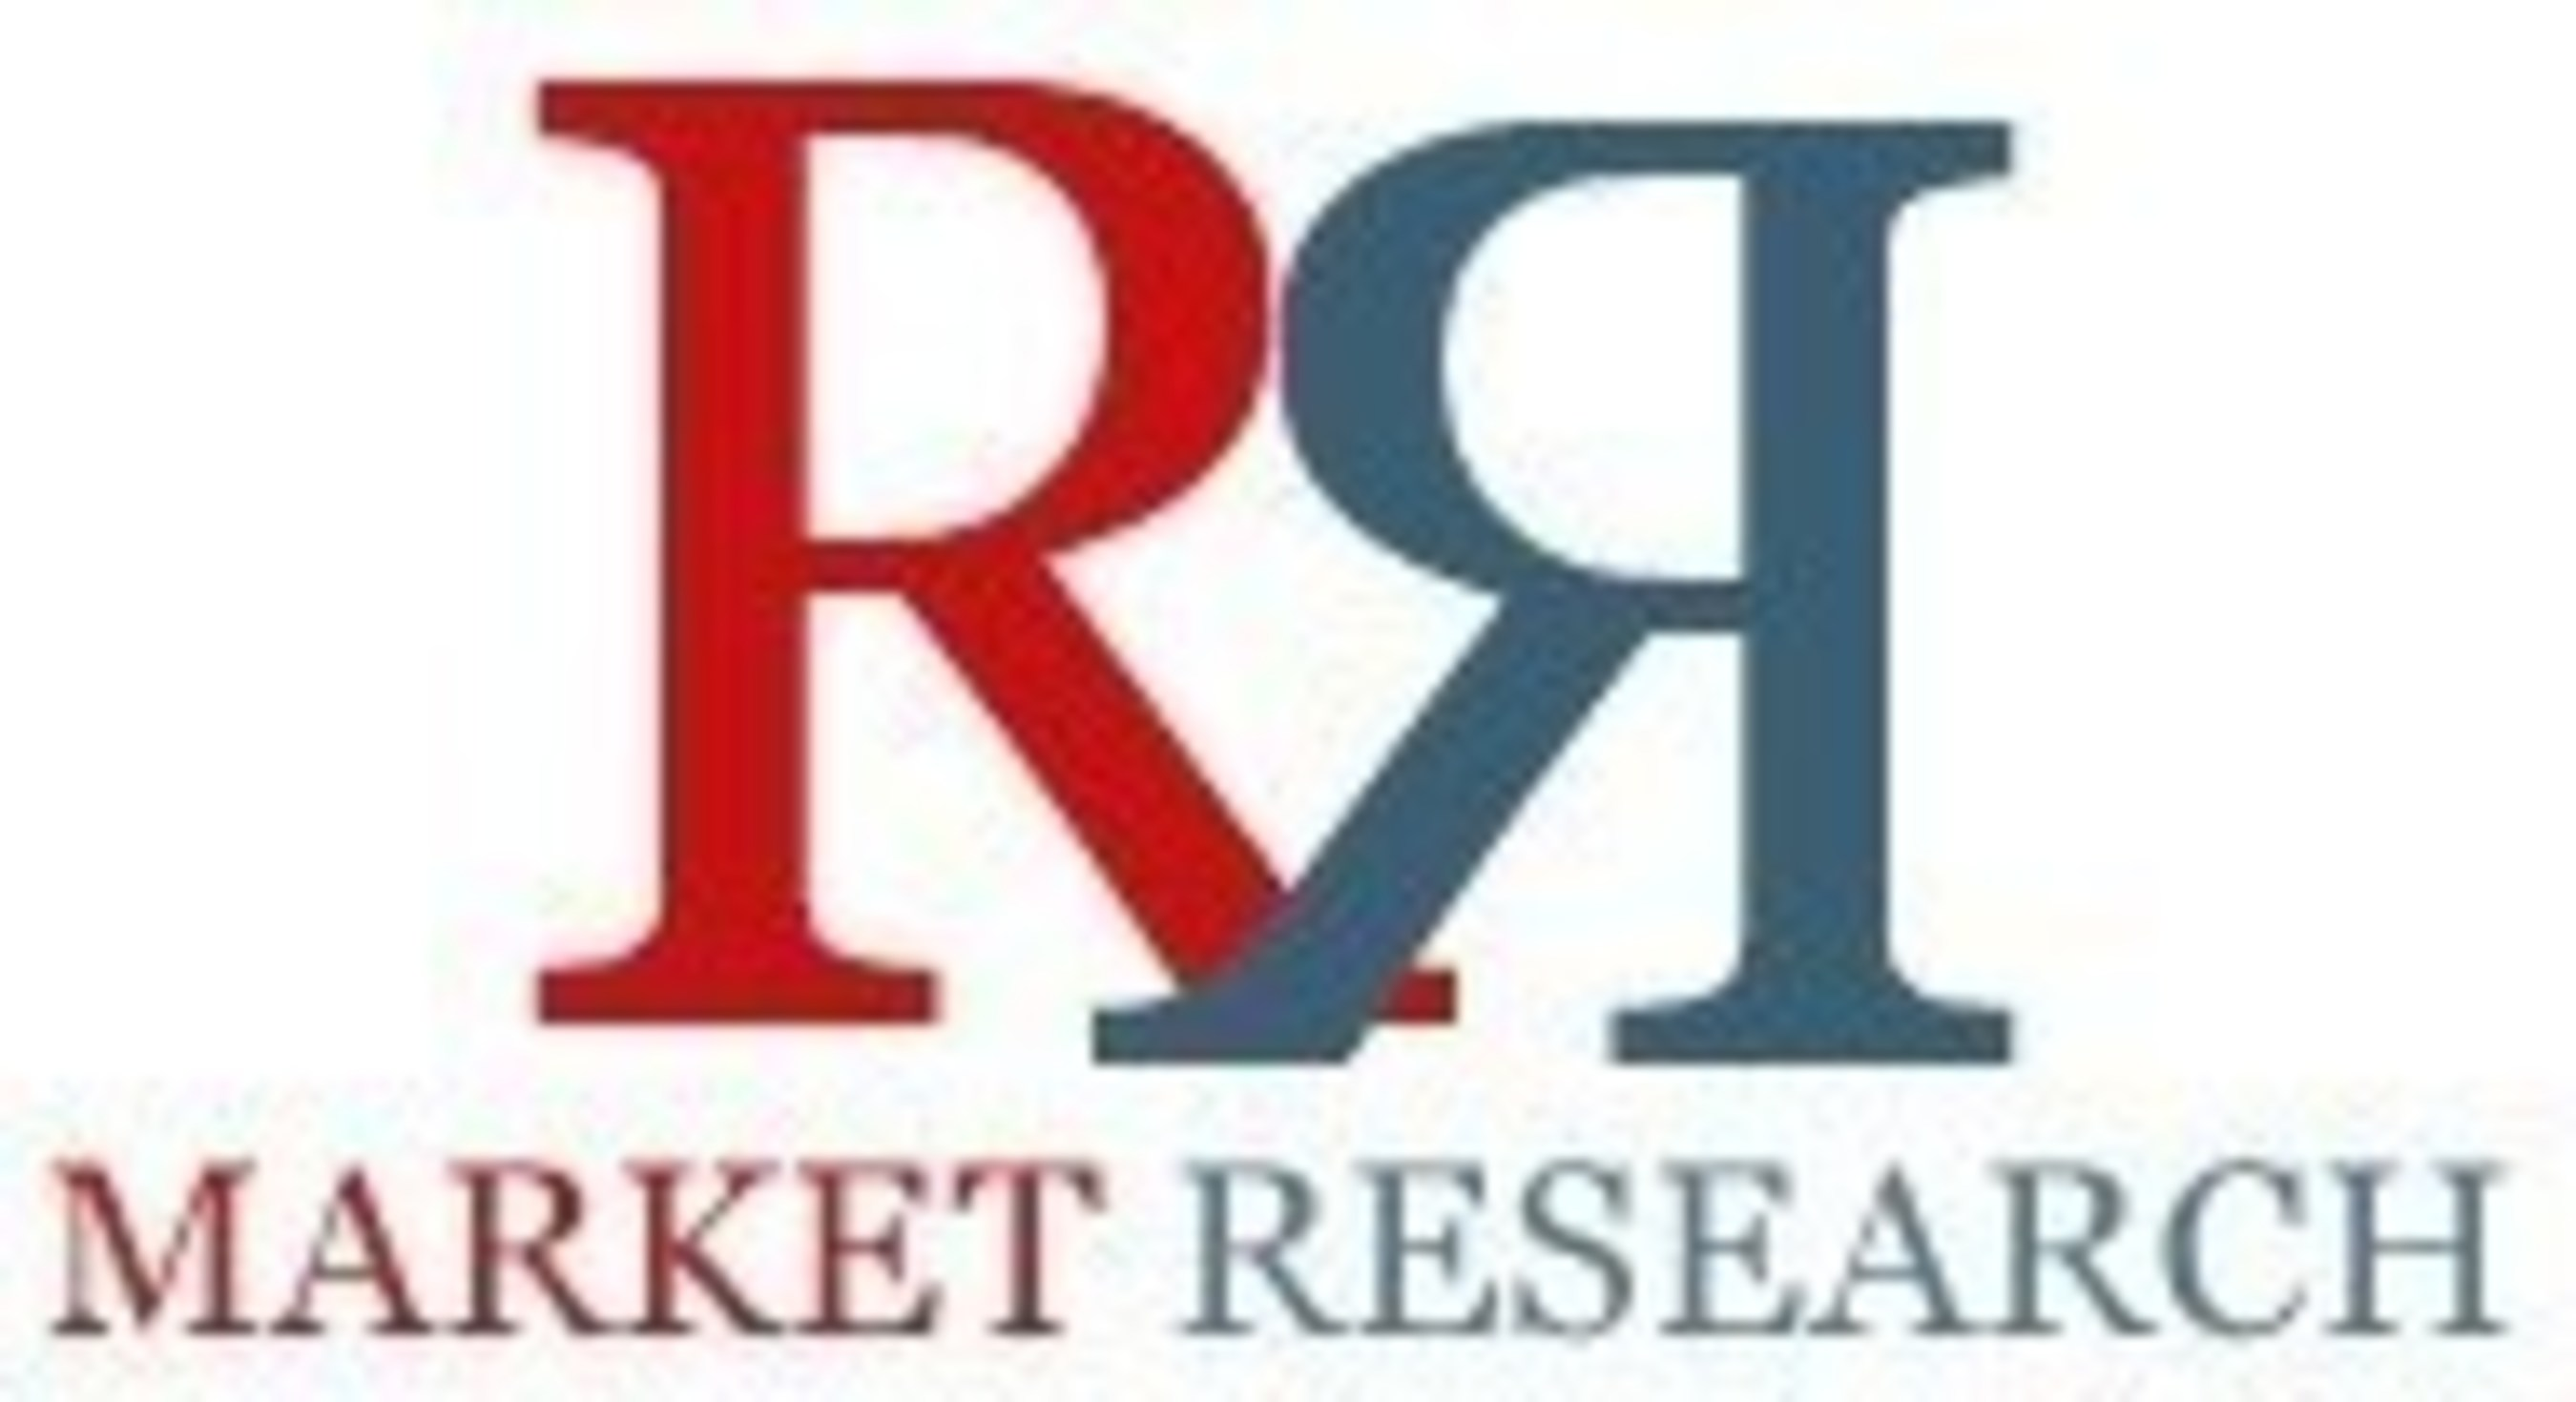 Light Balloon Market 2015-2020 Global & Chinese Key Manufacturers Analysis Review